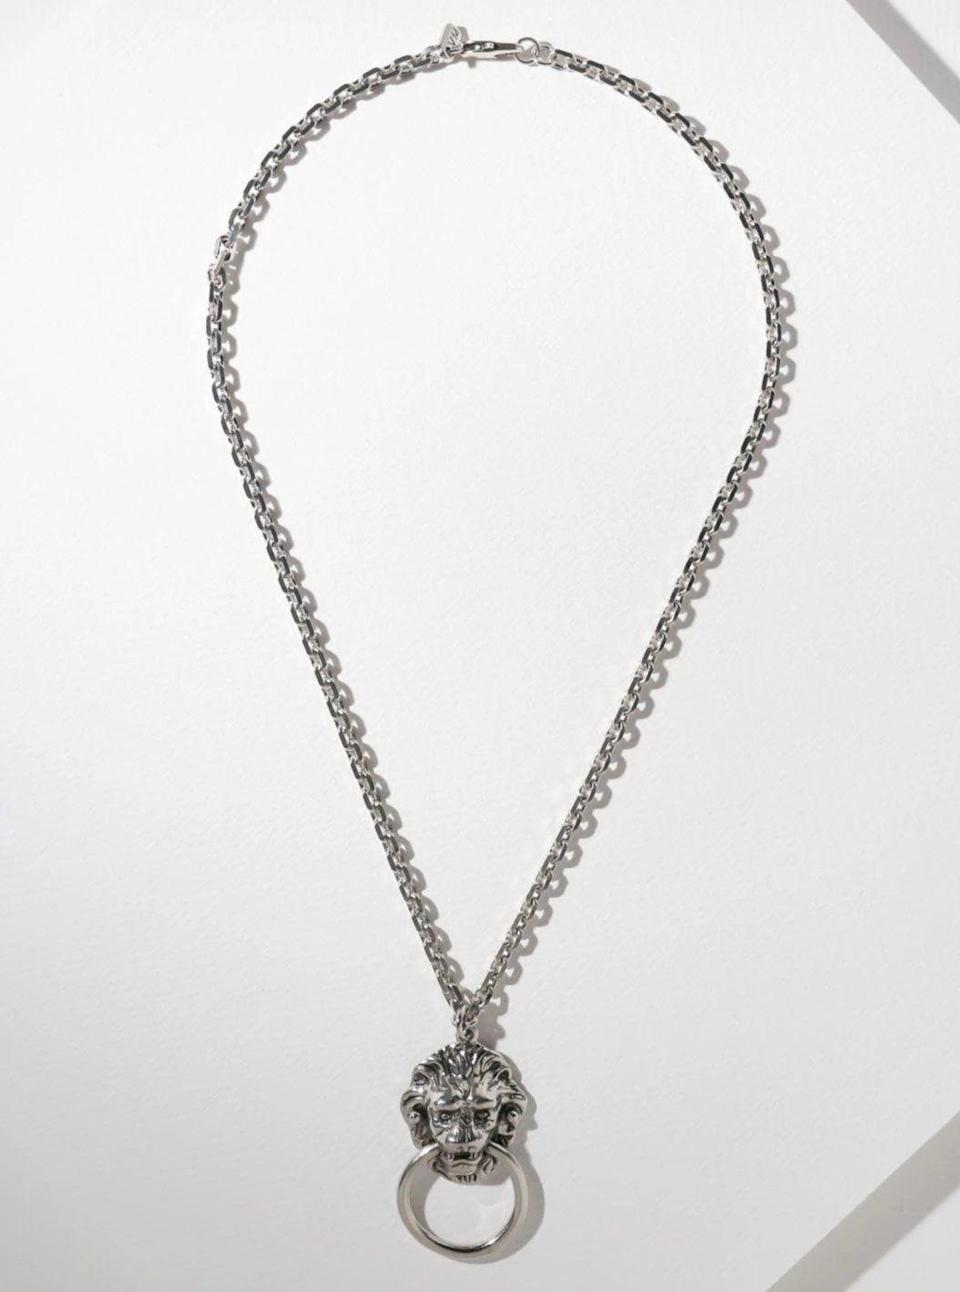 "<p><strong>Vanessa Mooney</strong></p><p>vanessamooney.com</p><p><strong>$75.00</strong></p><p><a href=""https://vanessamooney.com/collections/necklaces/products/the-vandal-door-knocker-necklace-silver?variant=30612973092899"" rel=""nofollow noopener"" target=""_blank"" data-ylk=""slk:SHOP IT"" class=""link rapid-noclick-resp"">SHOP IT</a></p><p>Try this chunky door knocker necklace to give your look a vintage feel. </p>"